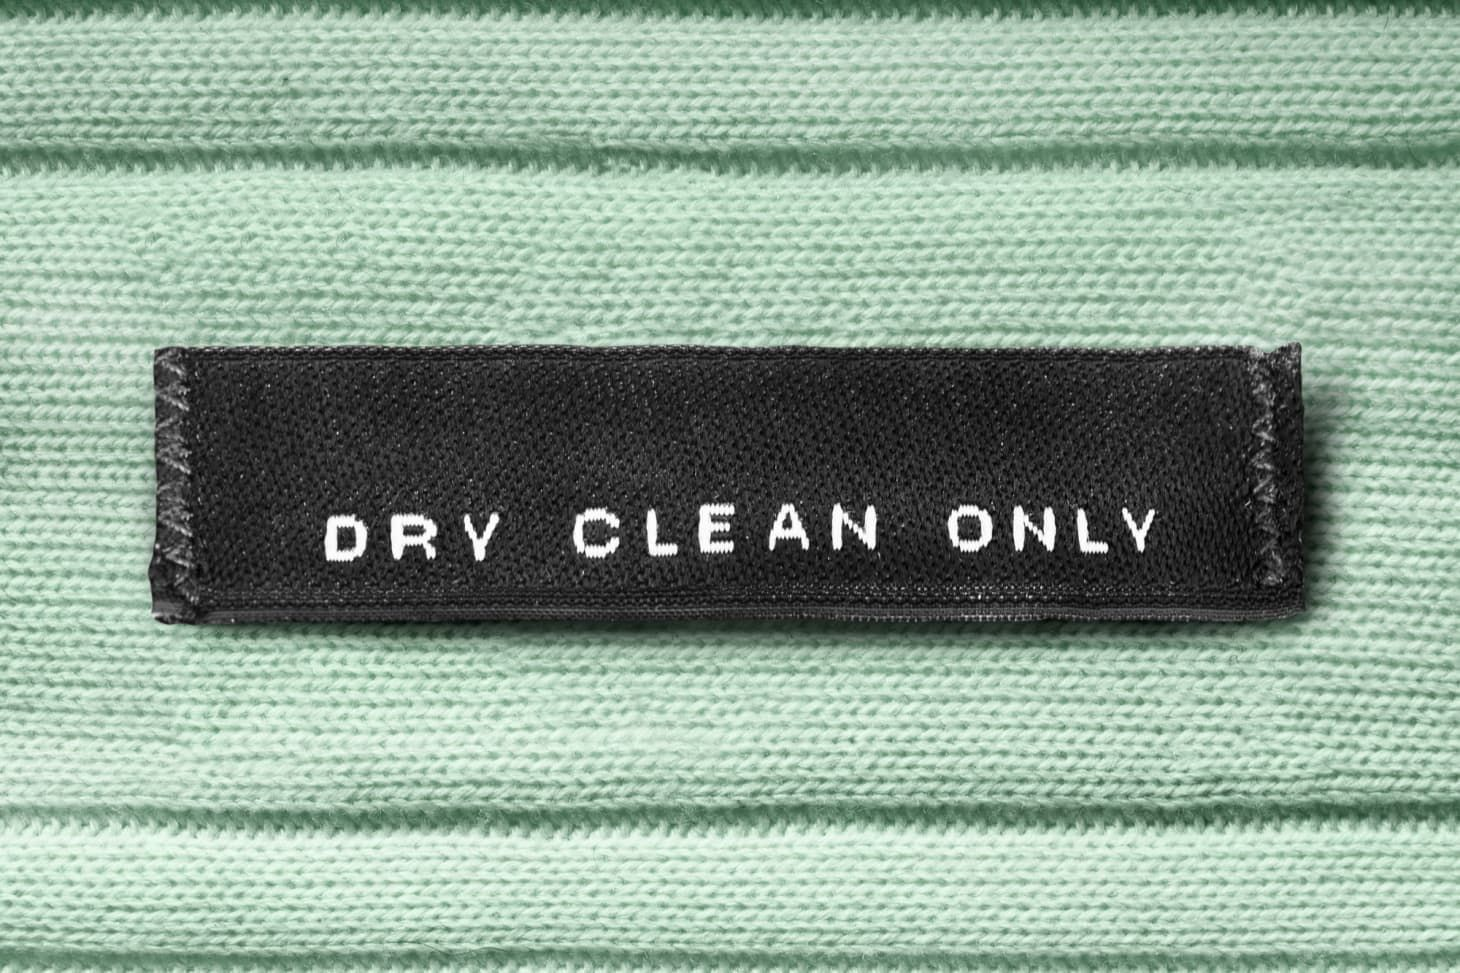 This Laundry Expert Says You Can Wash Dry Clean Only Clothes At Home Without A Kit Cleaning Clothes Dry Cleaning At Home Cleaning